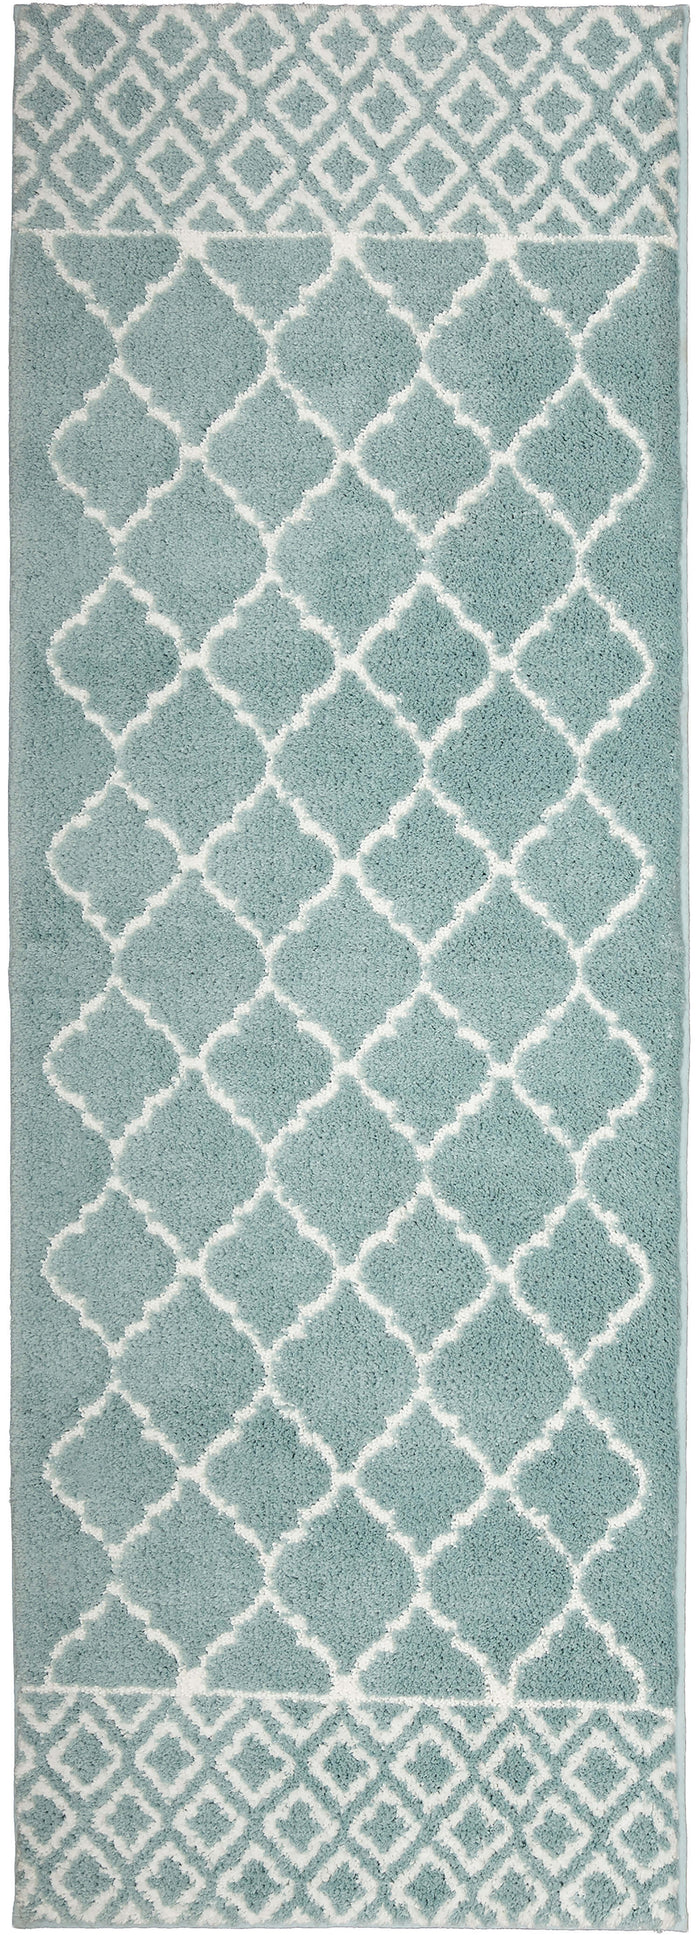 Compass Newport Blue Green Bath Mat Covered By Rugs